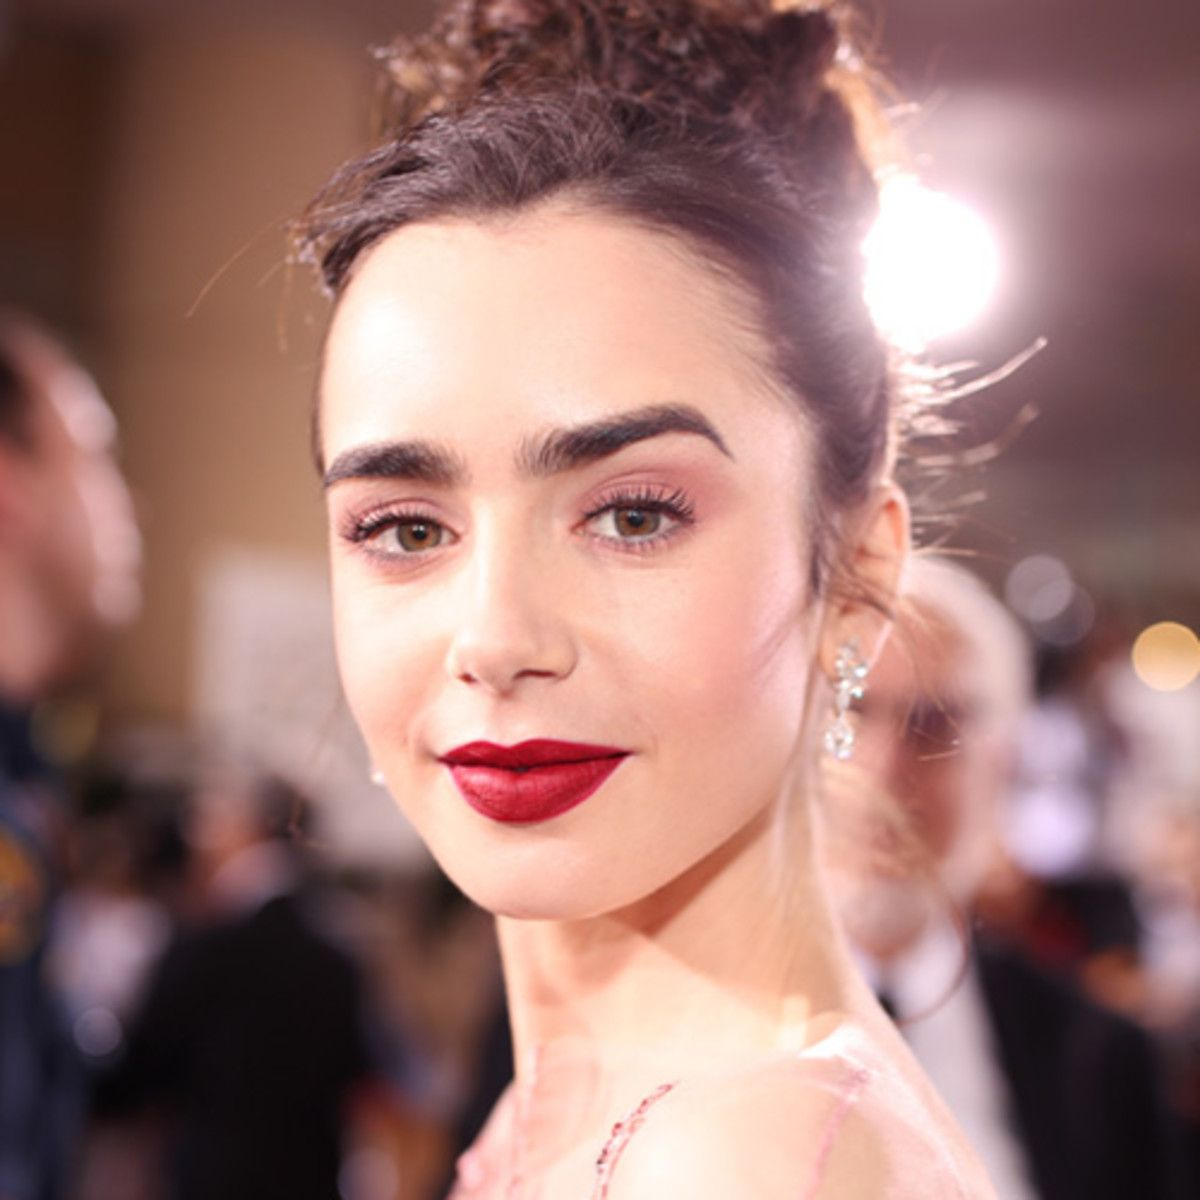 Lily Collins Young British-American Actress and Model